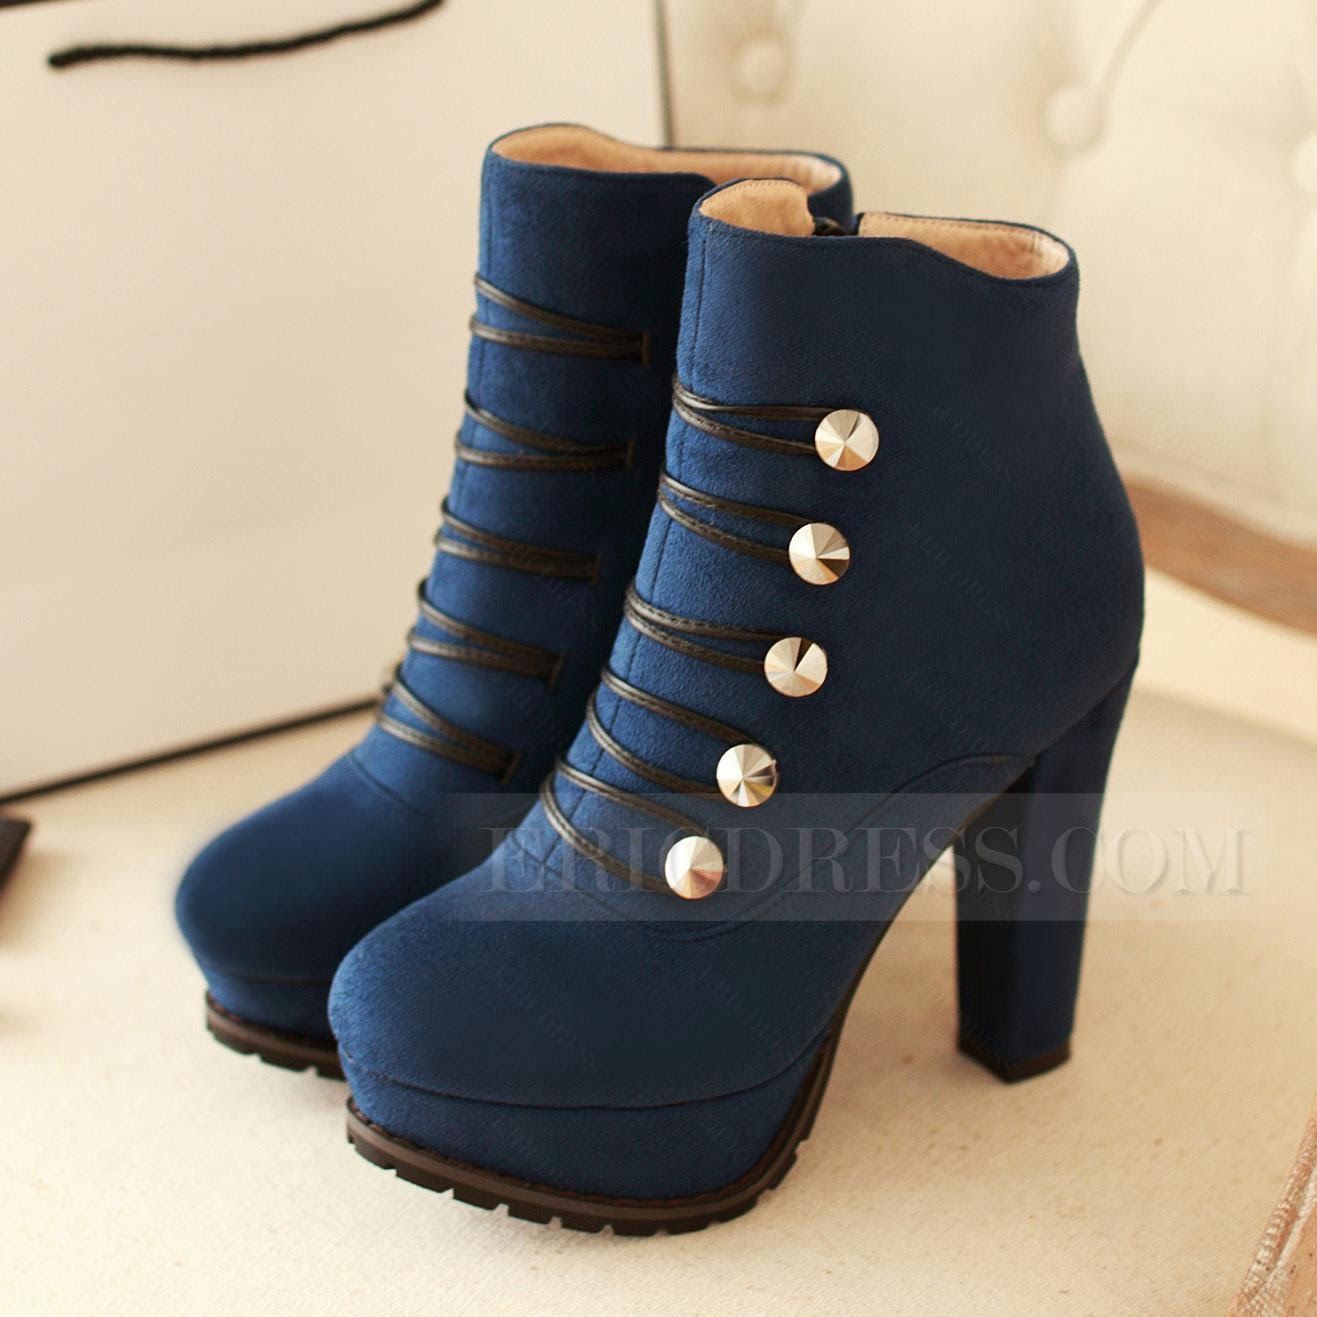 http://www.ericdress.com/product/New-Suede-Chunky-Heel-Lace-Up-Closed-Toe-Ankle-Boots-With-Platform-10708215.html